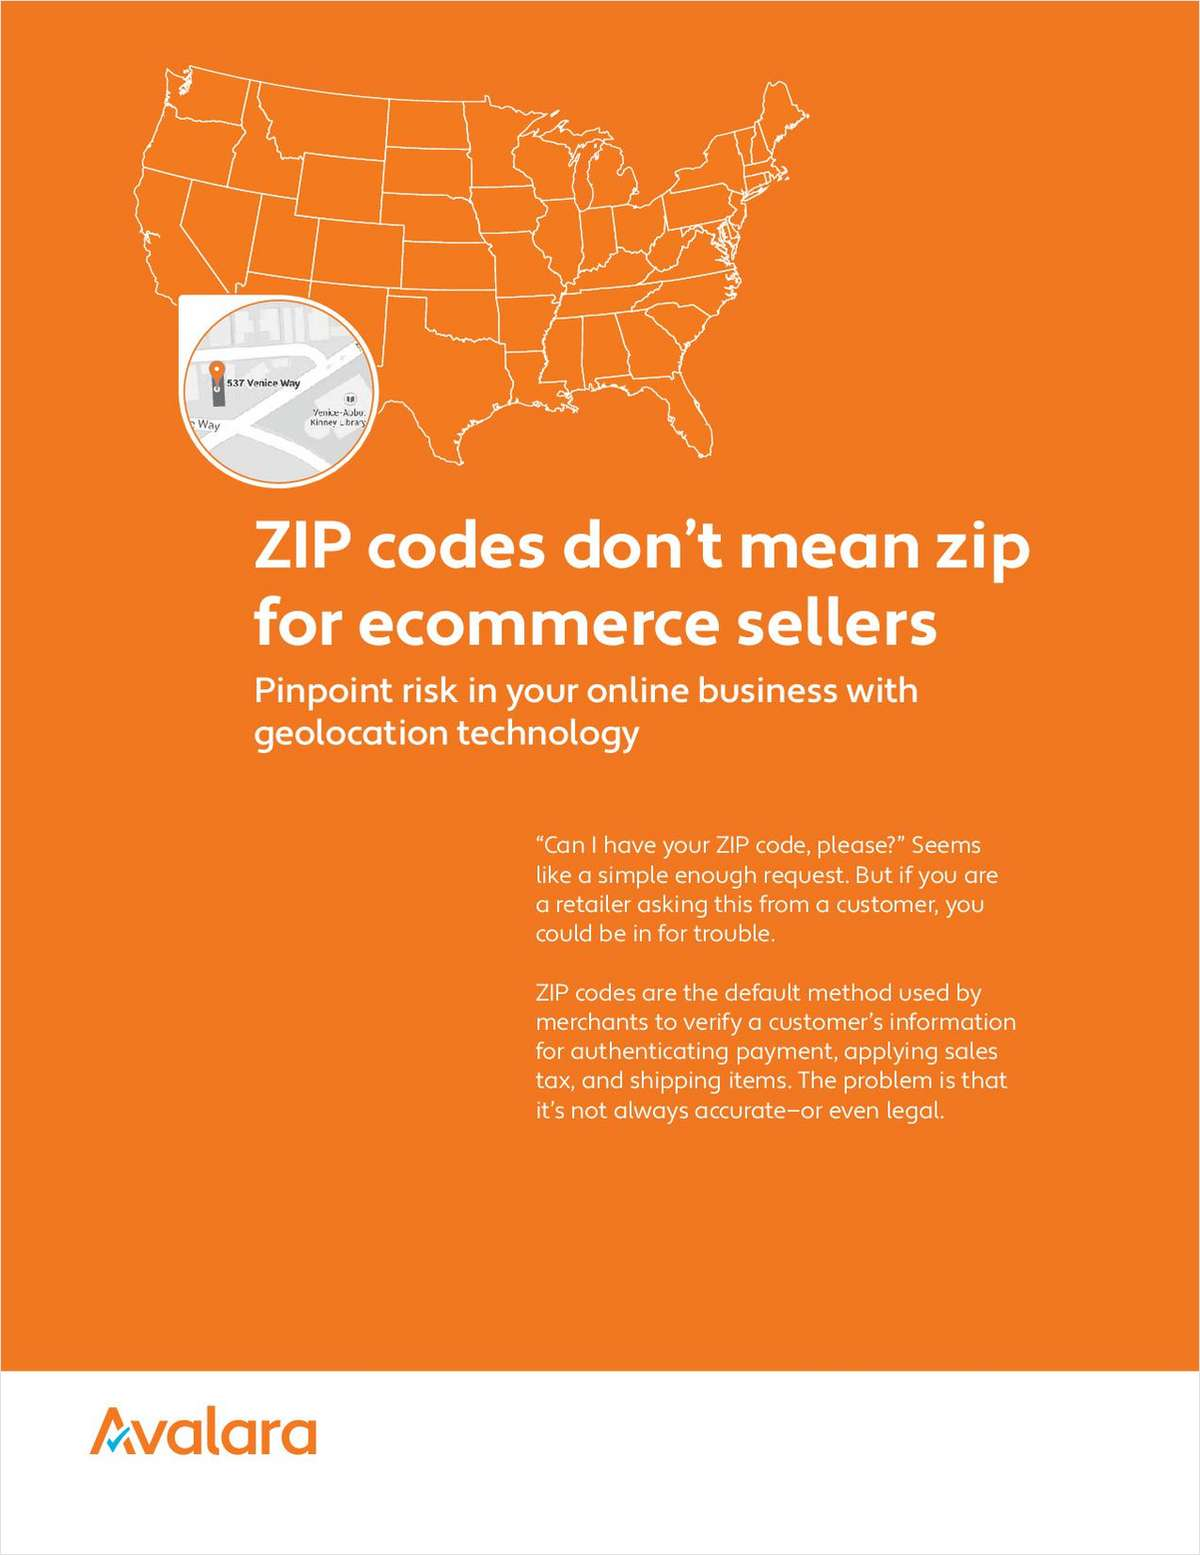 ZIP Codes Don't Mean Zip for eCommerce Sellers